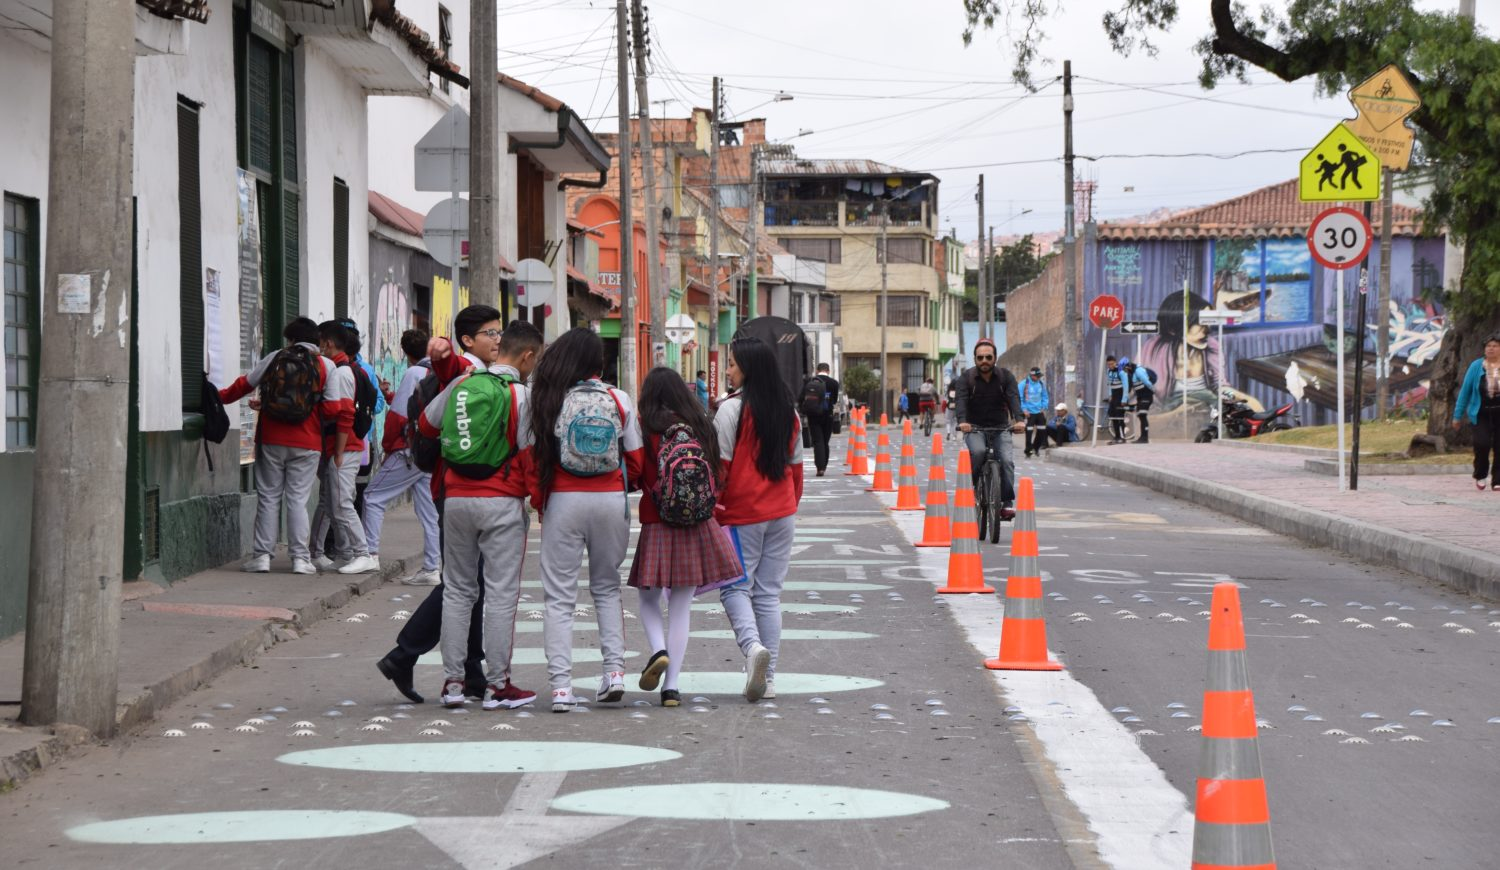 A group of teenagers walking down the street in Bogota